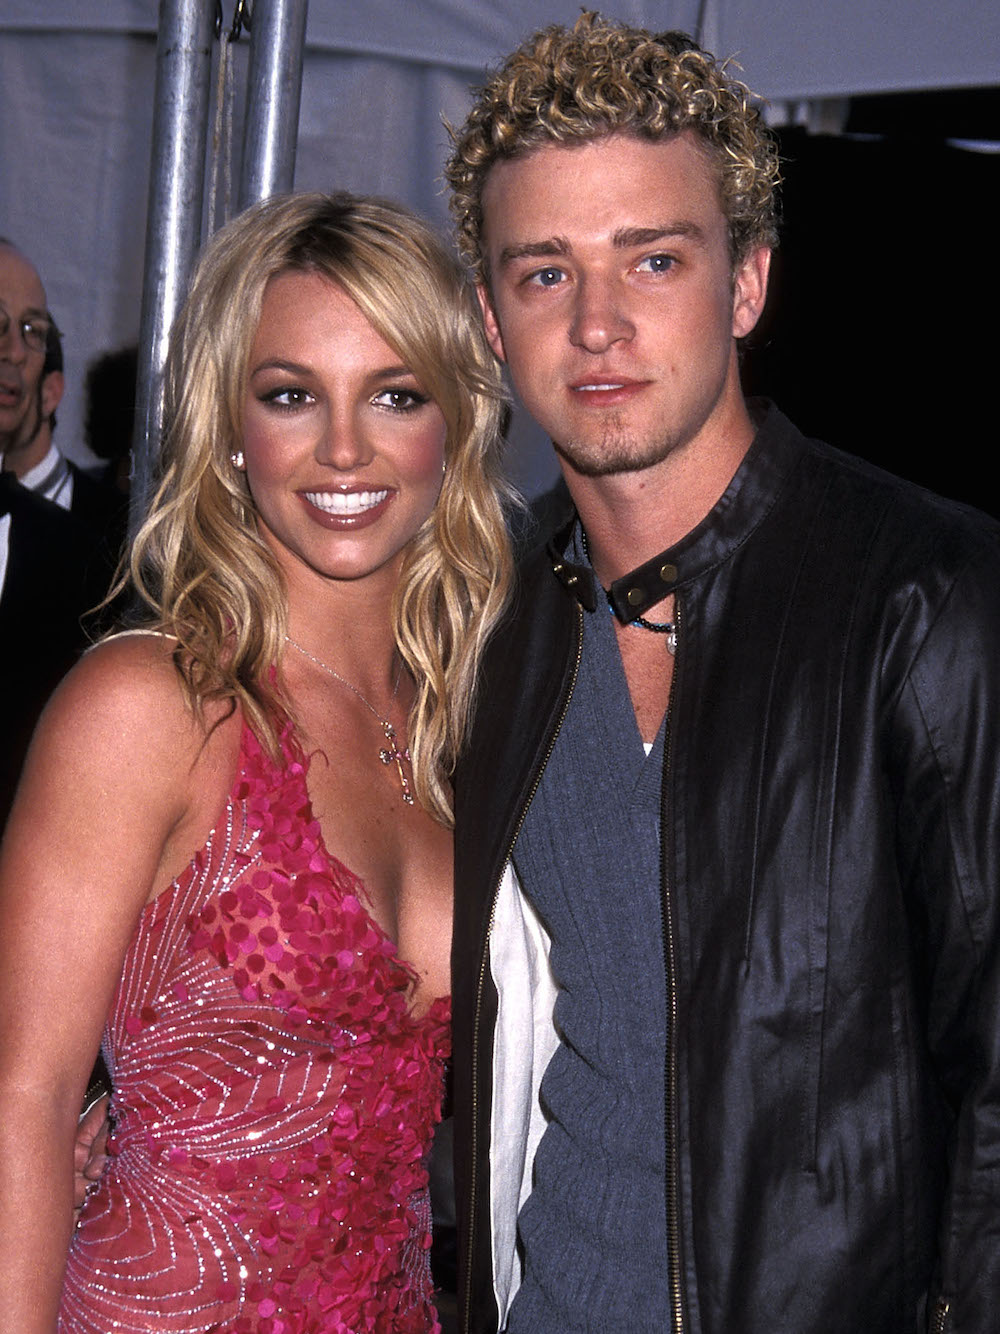 Britney Spears and Justin Timberlake at a premiere together.